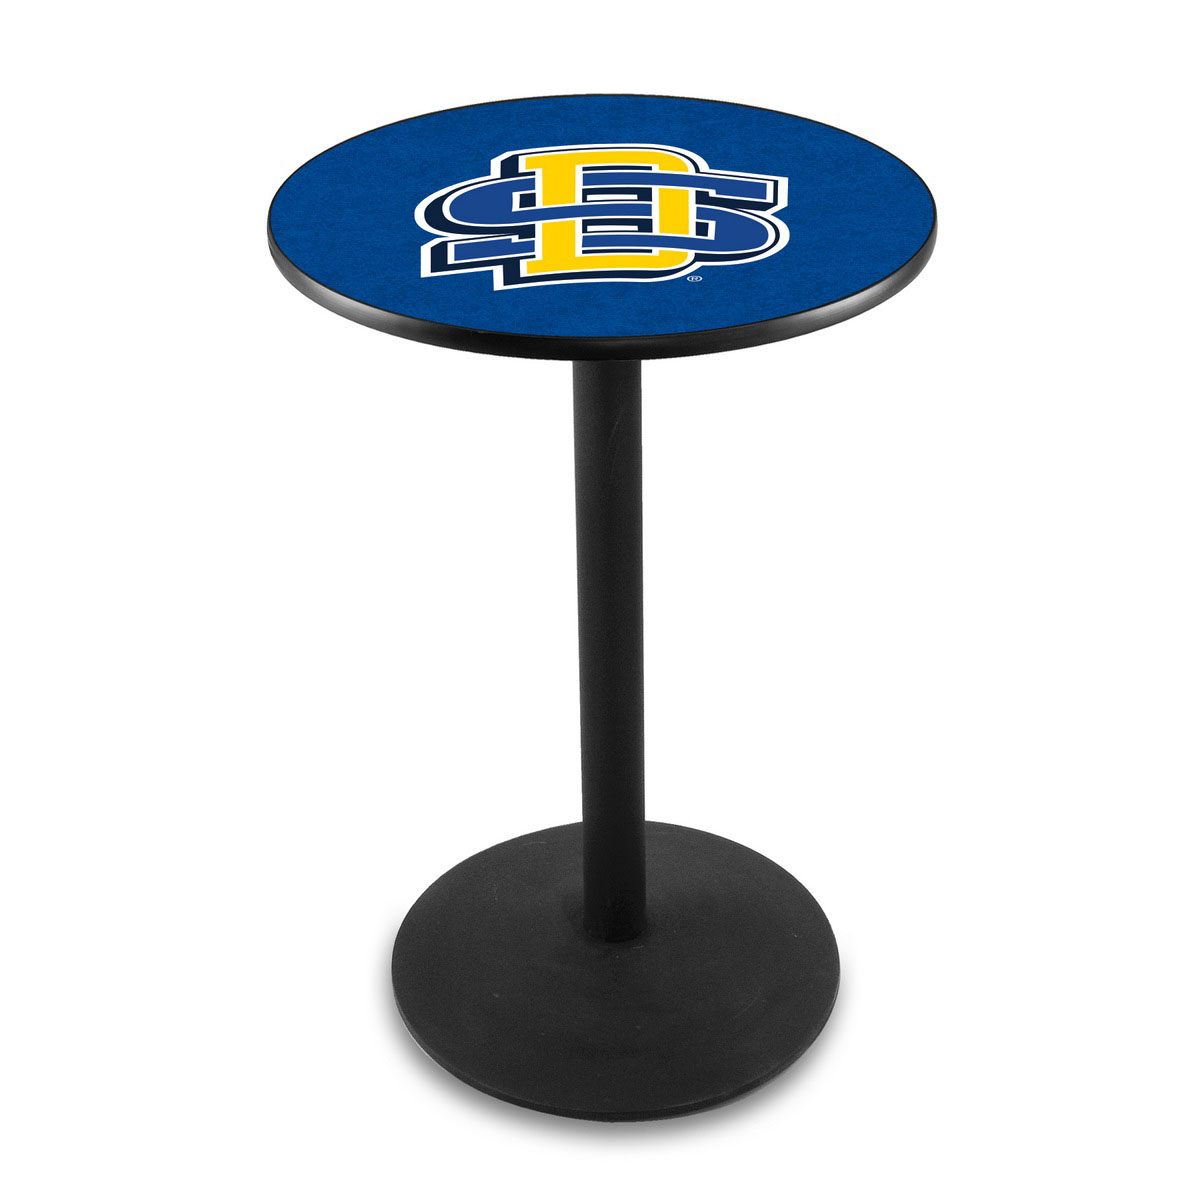 Select South-Dakota-State-University-Logo-Pub-Bar-Table-Round-Stand Product Picture 1304